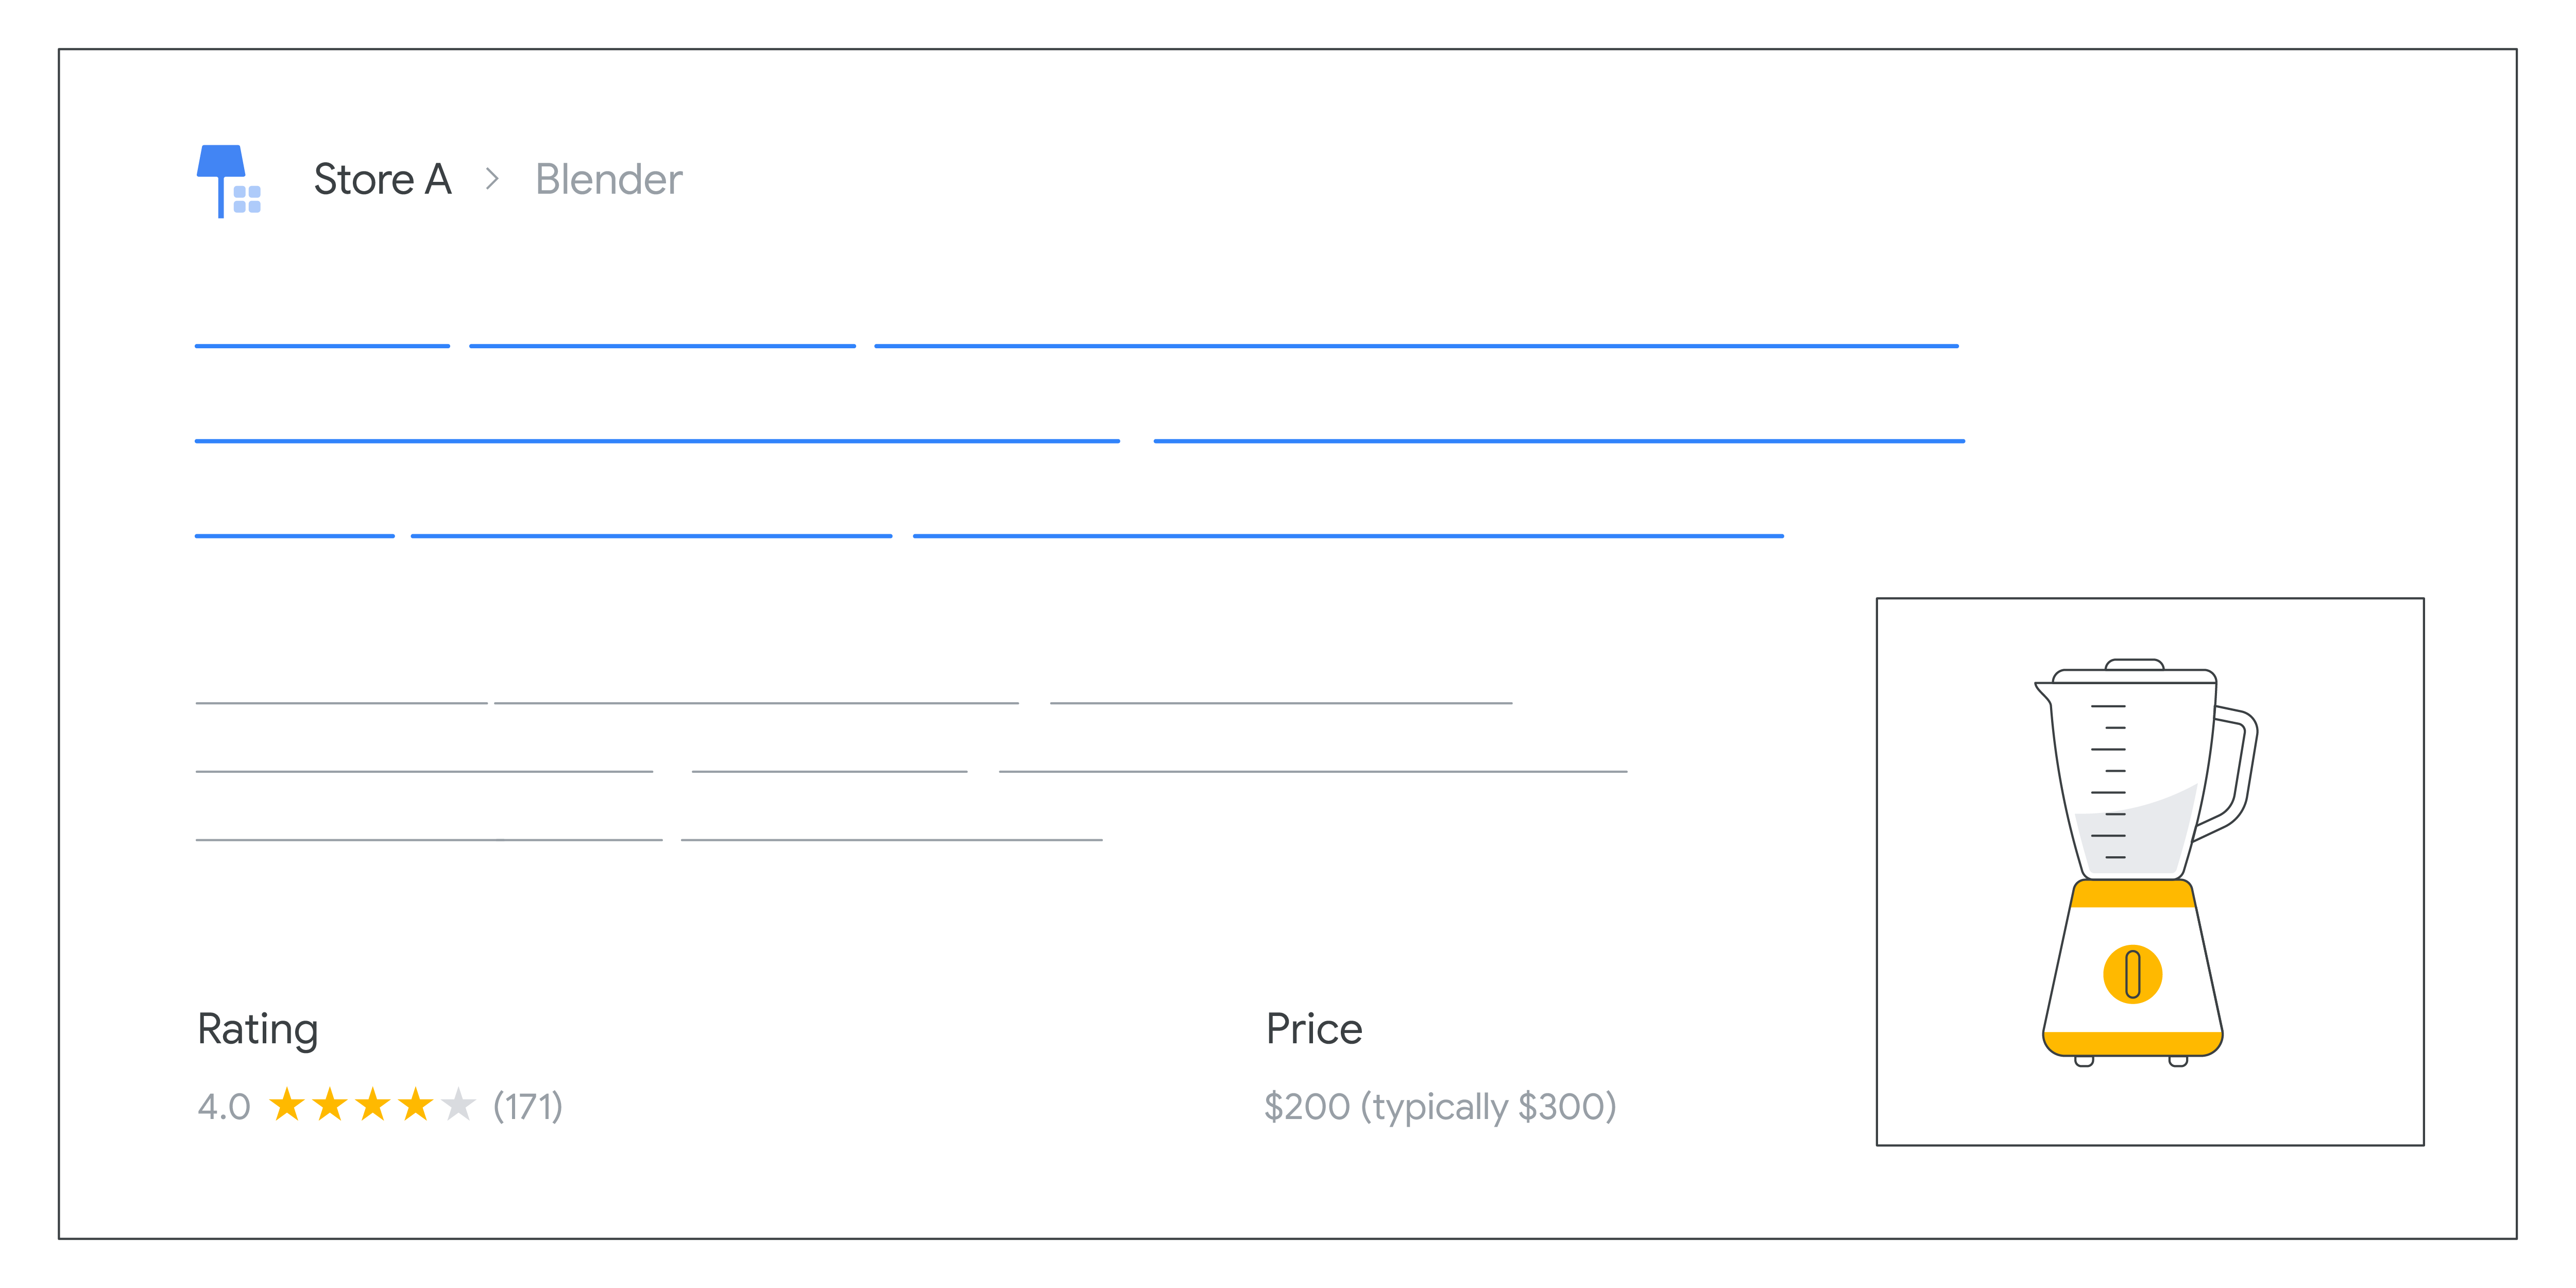 Price drop in search results